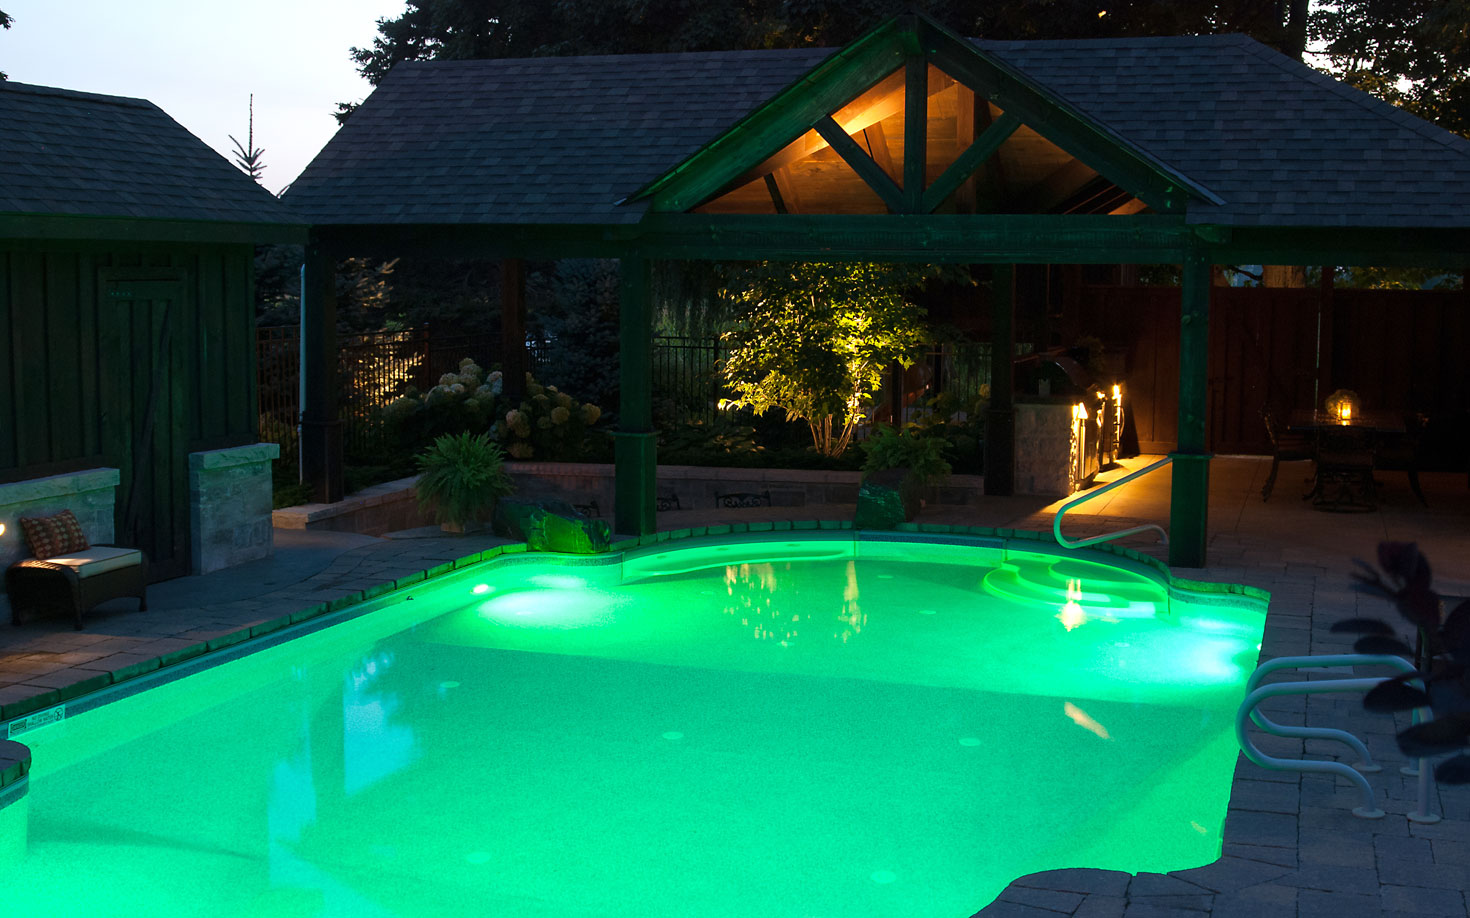 Pool landscaping company hamilton burlington pool for Pool design hamilton